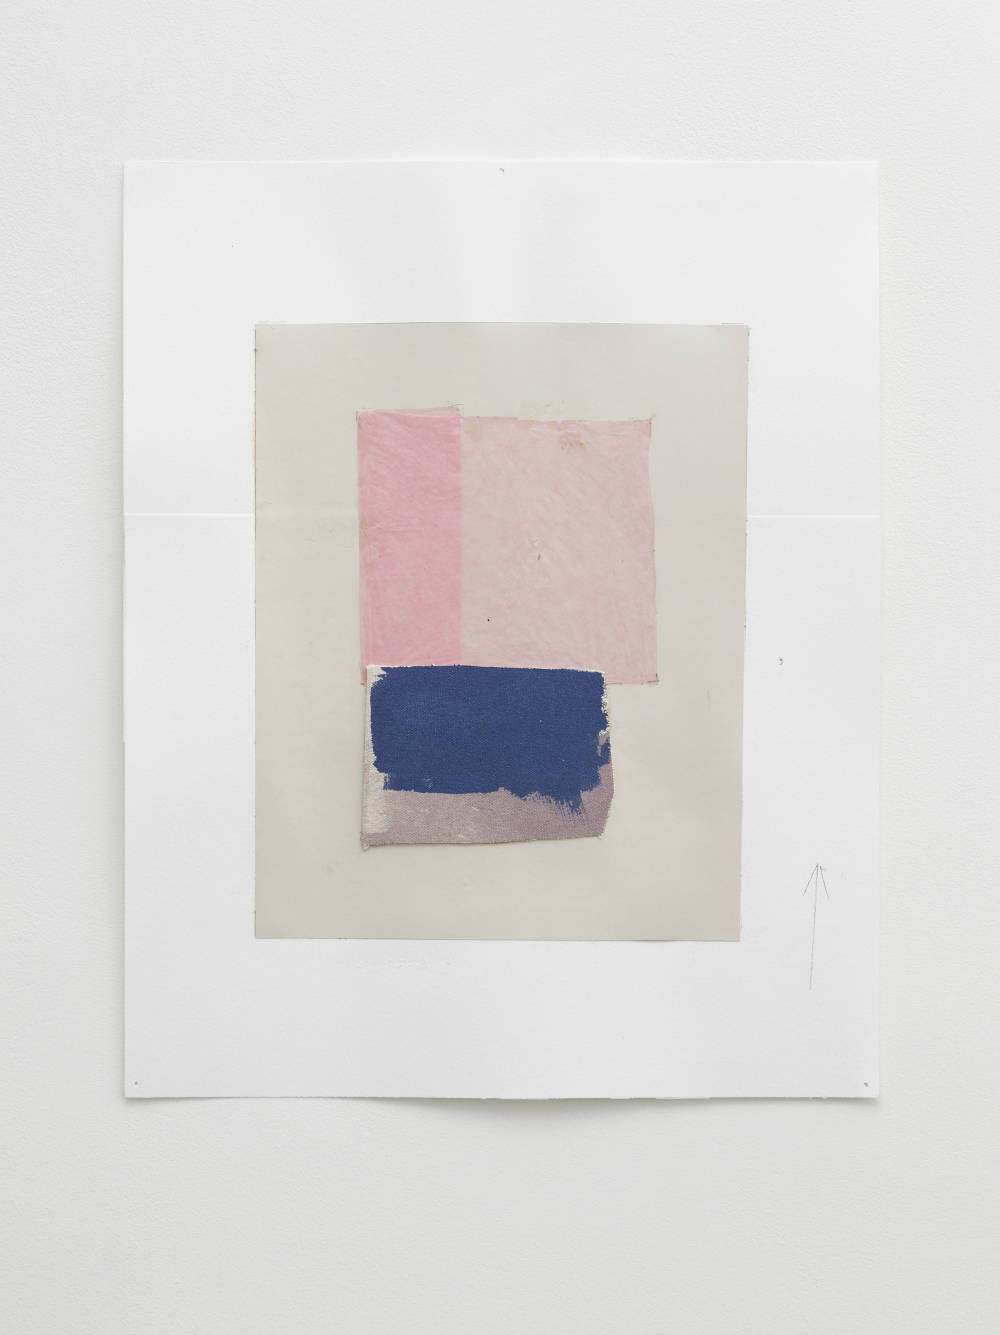 Peter Joseph, Untitled Study, April 2017, 2017. Collage on paper 17 3/8 x 13 3/4 inches (44 x 35 cm) © Peter Joseph; Courtesy Lisson Gallery. Photo by Jack Hems